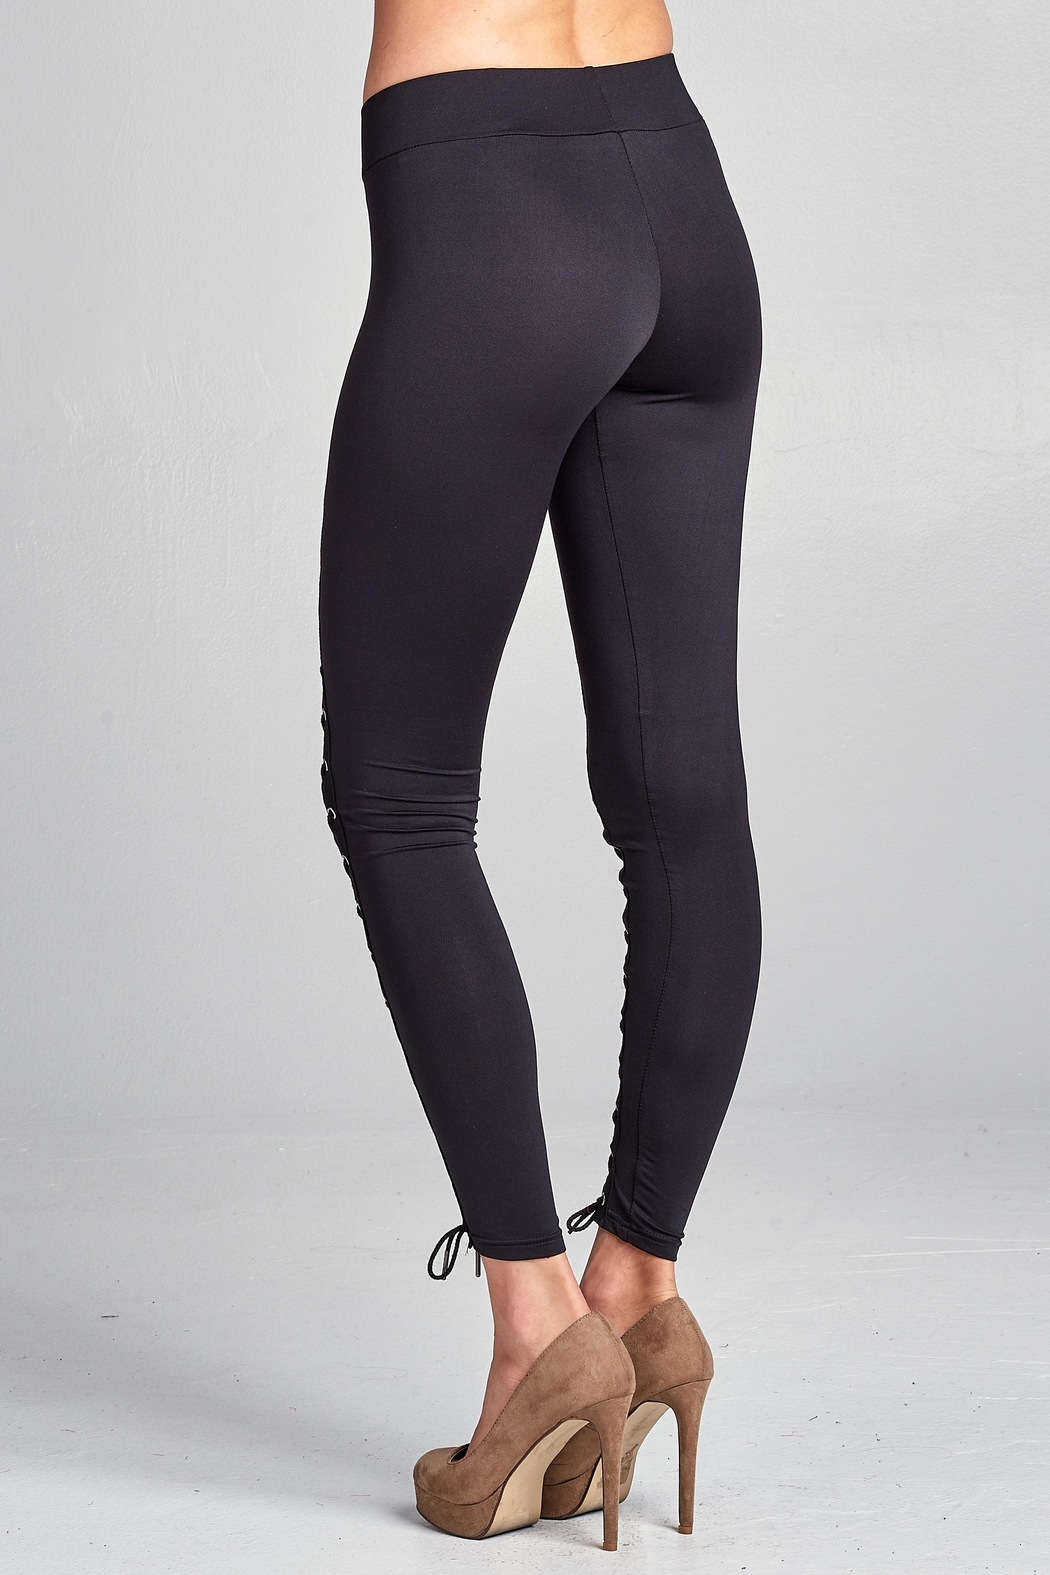 Racine Lace Up Leggings - Side Cropped Image